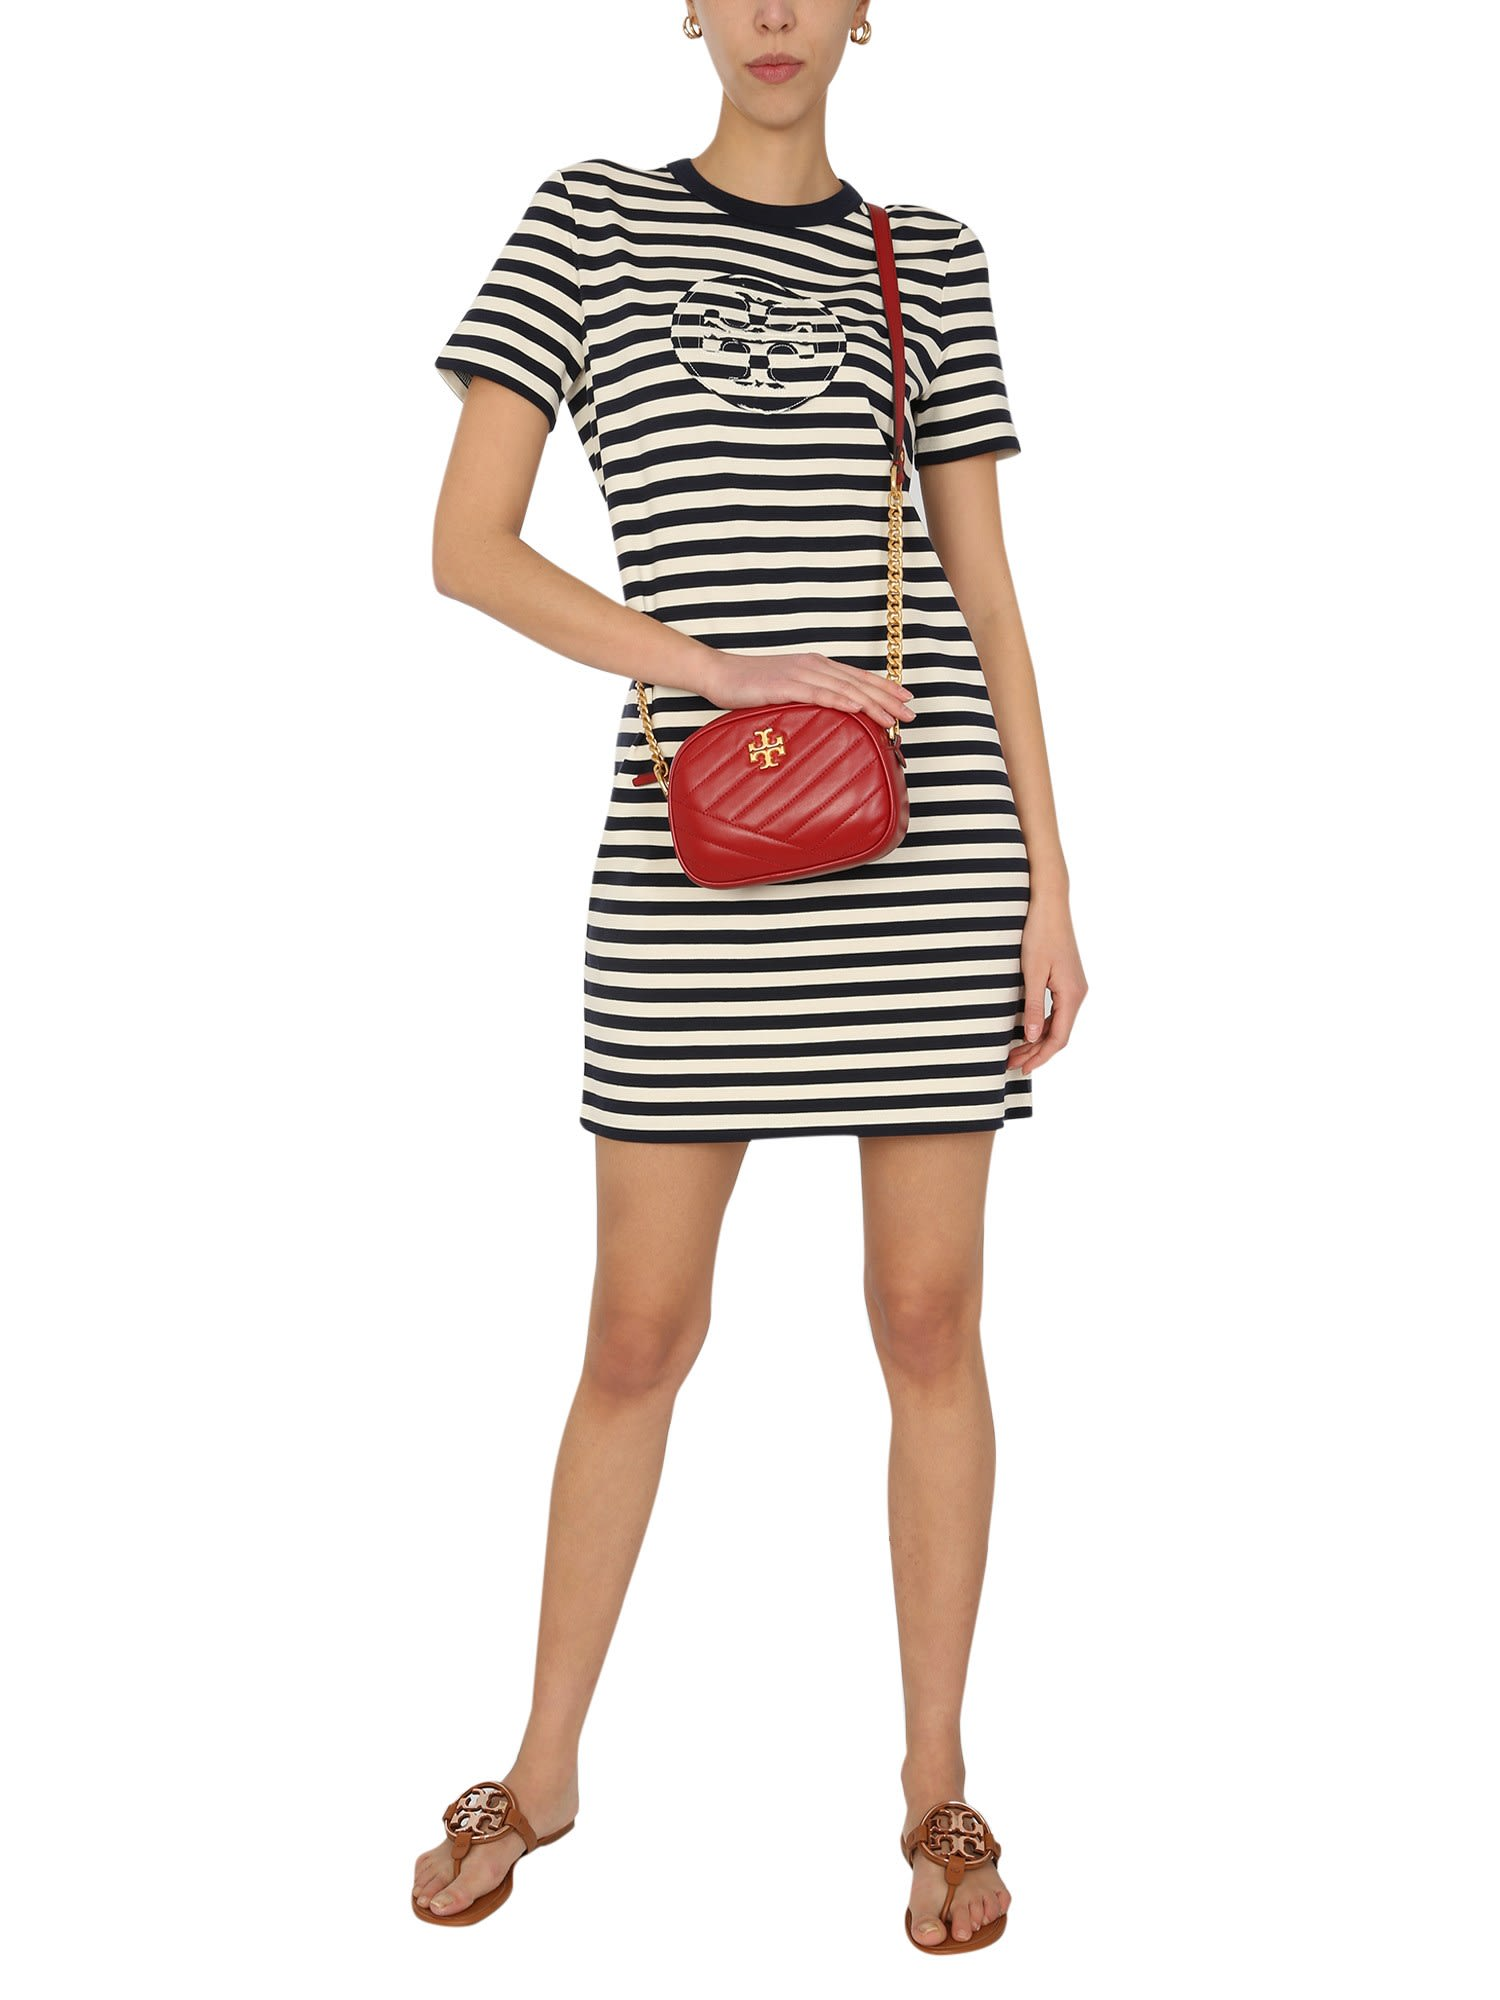 Buy Tory Burch Dress With Logo online, shop Tory Burch with free shipping